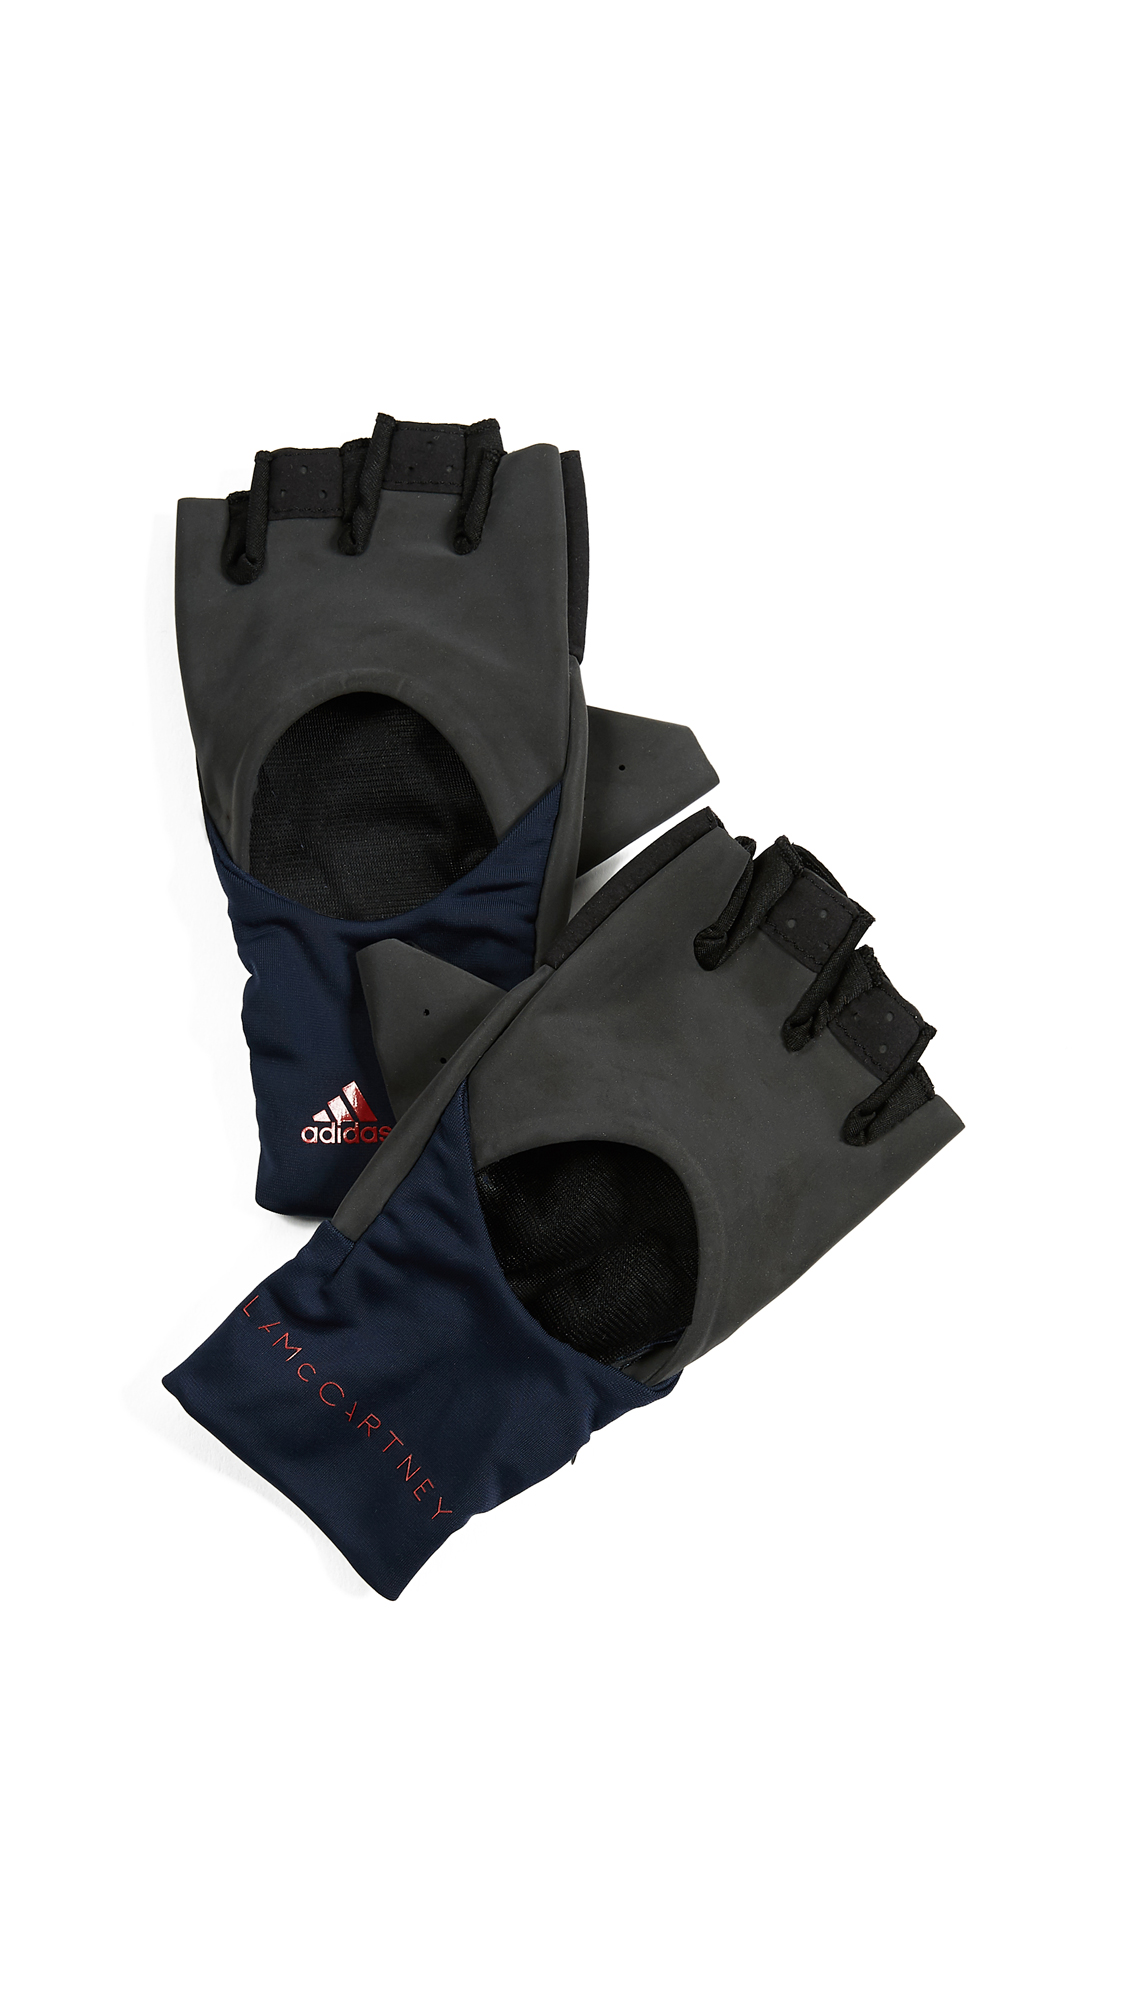 adidas by Stella McCartney Training Gloves - Steel